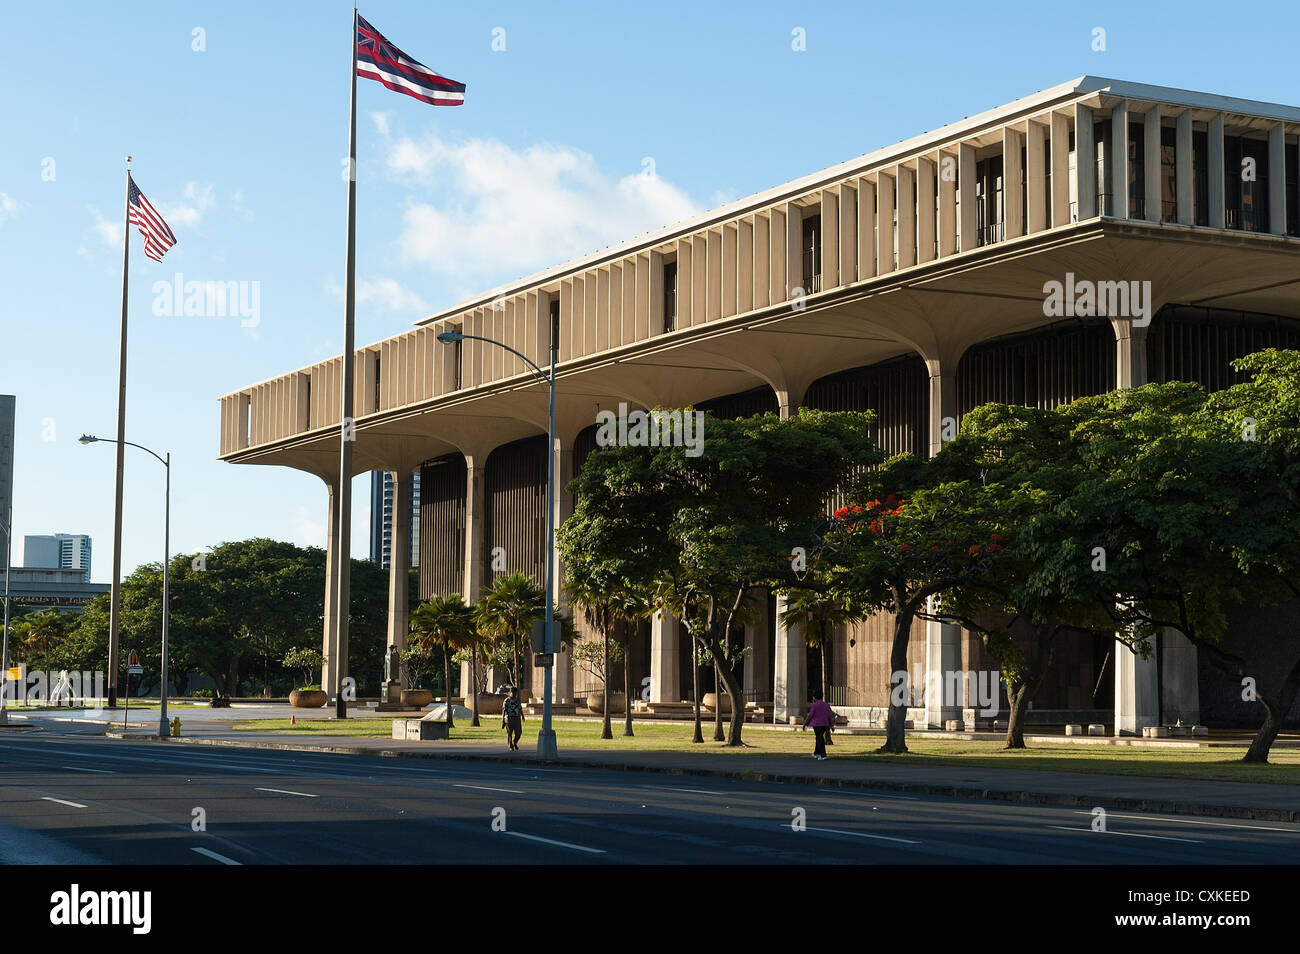 Elk284-1221 Hawaii, Oahu, Honolulu, Hawaii State Capitol - Stock Image